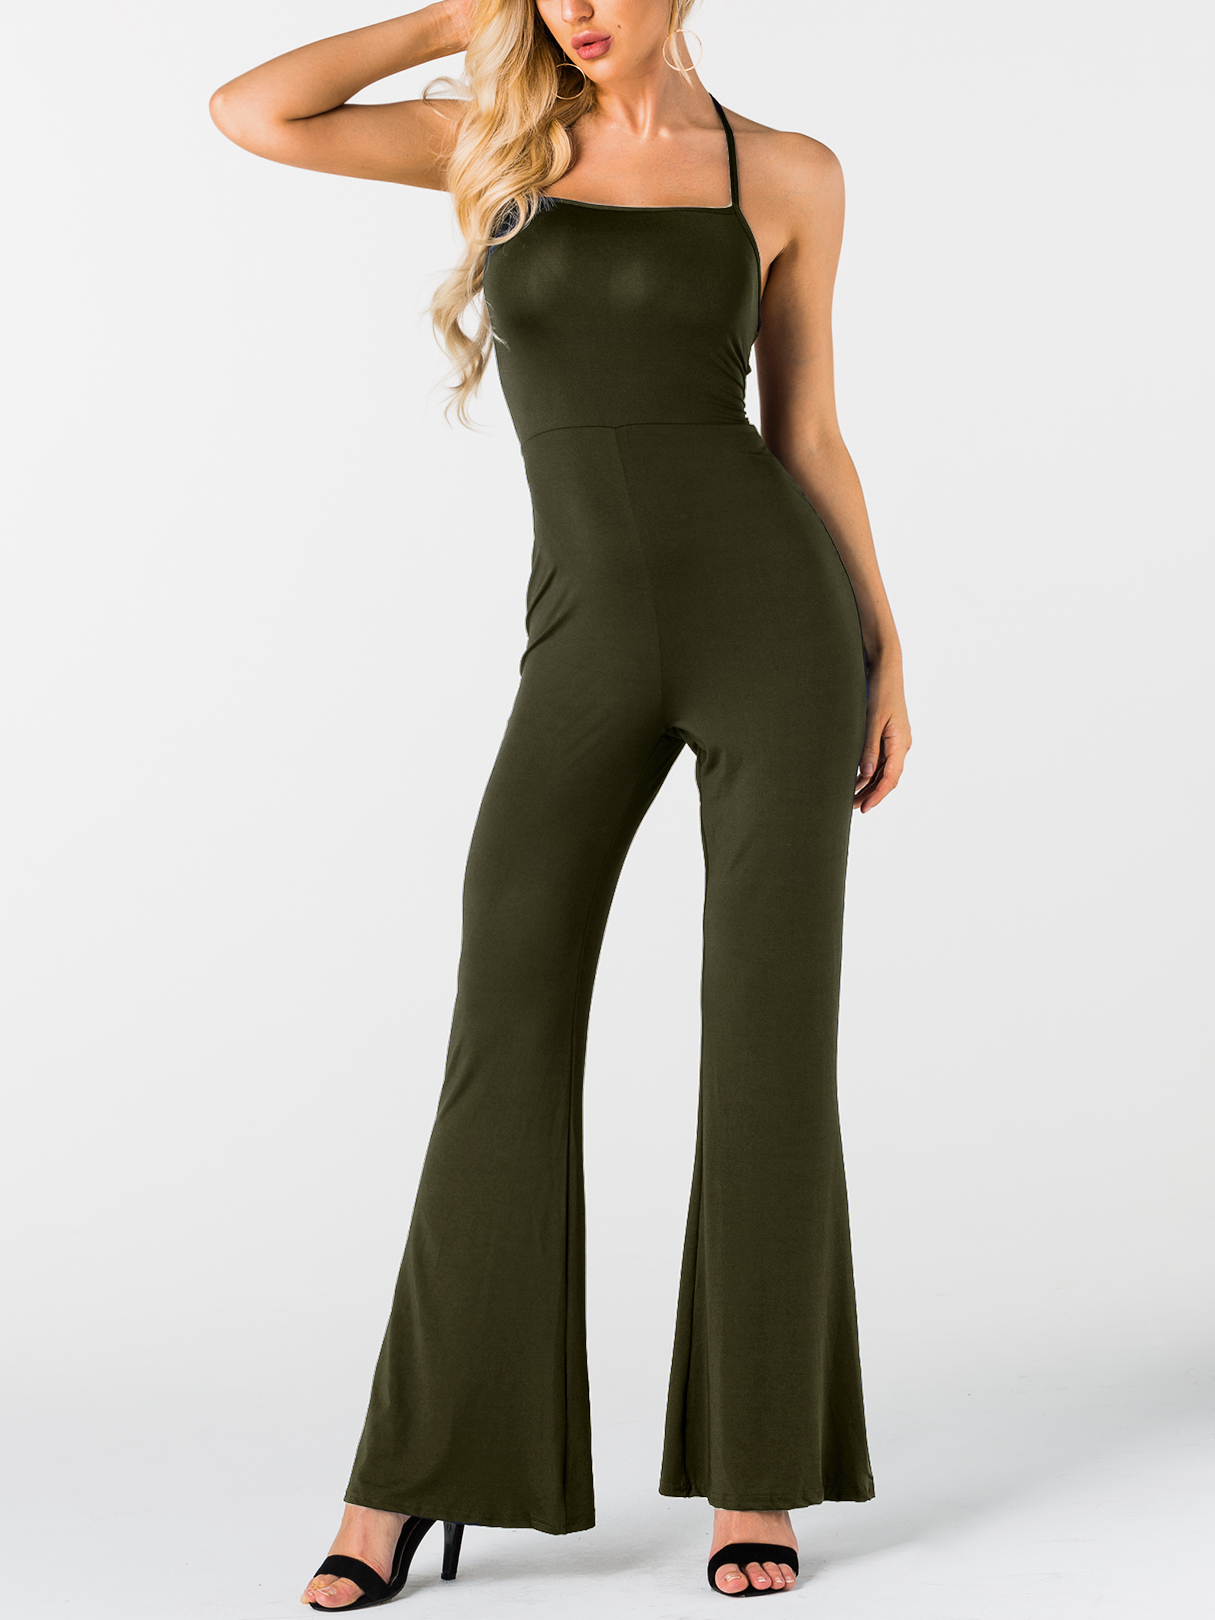 Army Green Lace-up Design Sleeveless Spaghetti Jumpsuit green sexy lace up hollow design sleeveless spaghetti bodycon dress